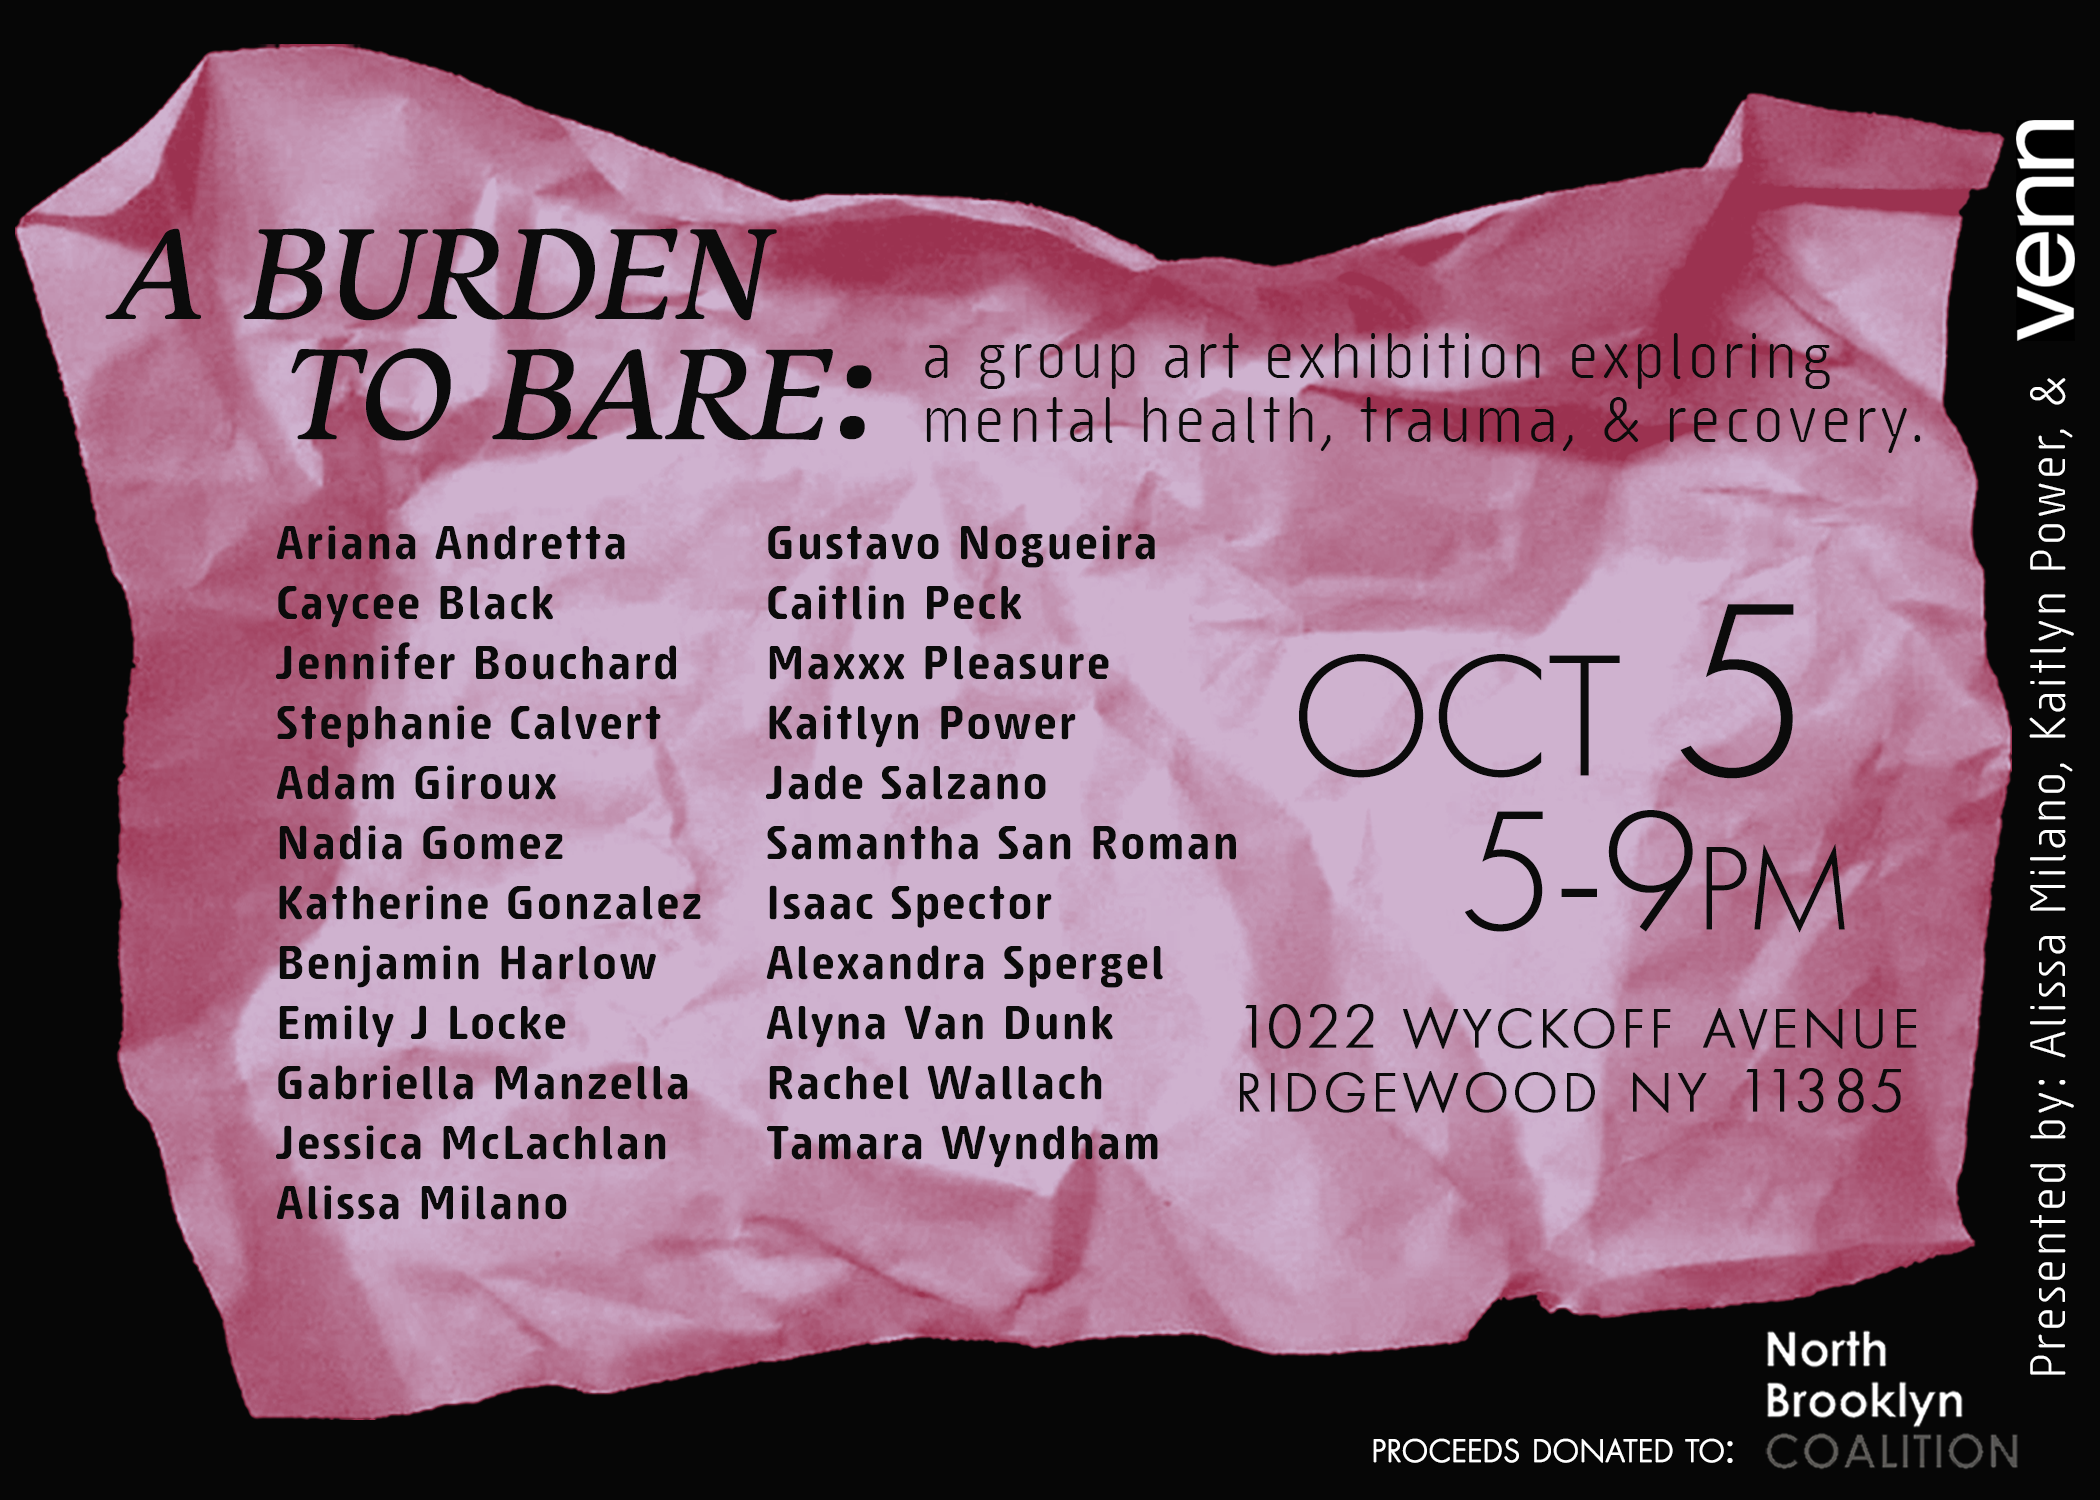 A Burden To Bare - 2 photographs by Rachel featured in the pop up art exhibition in New York. Proceeds from the show donated to North Brooklyn Coalition Against Family Violence. The North Brooklyn Coalition seeks to address the systemic racism, institutional injustice and cultural barriers survivors of domestic violence and sexual assault face by creating a community-based support network, providing supportive services and engaging the community through outreach, education, advocacy and activism.